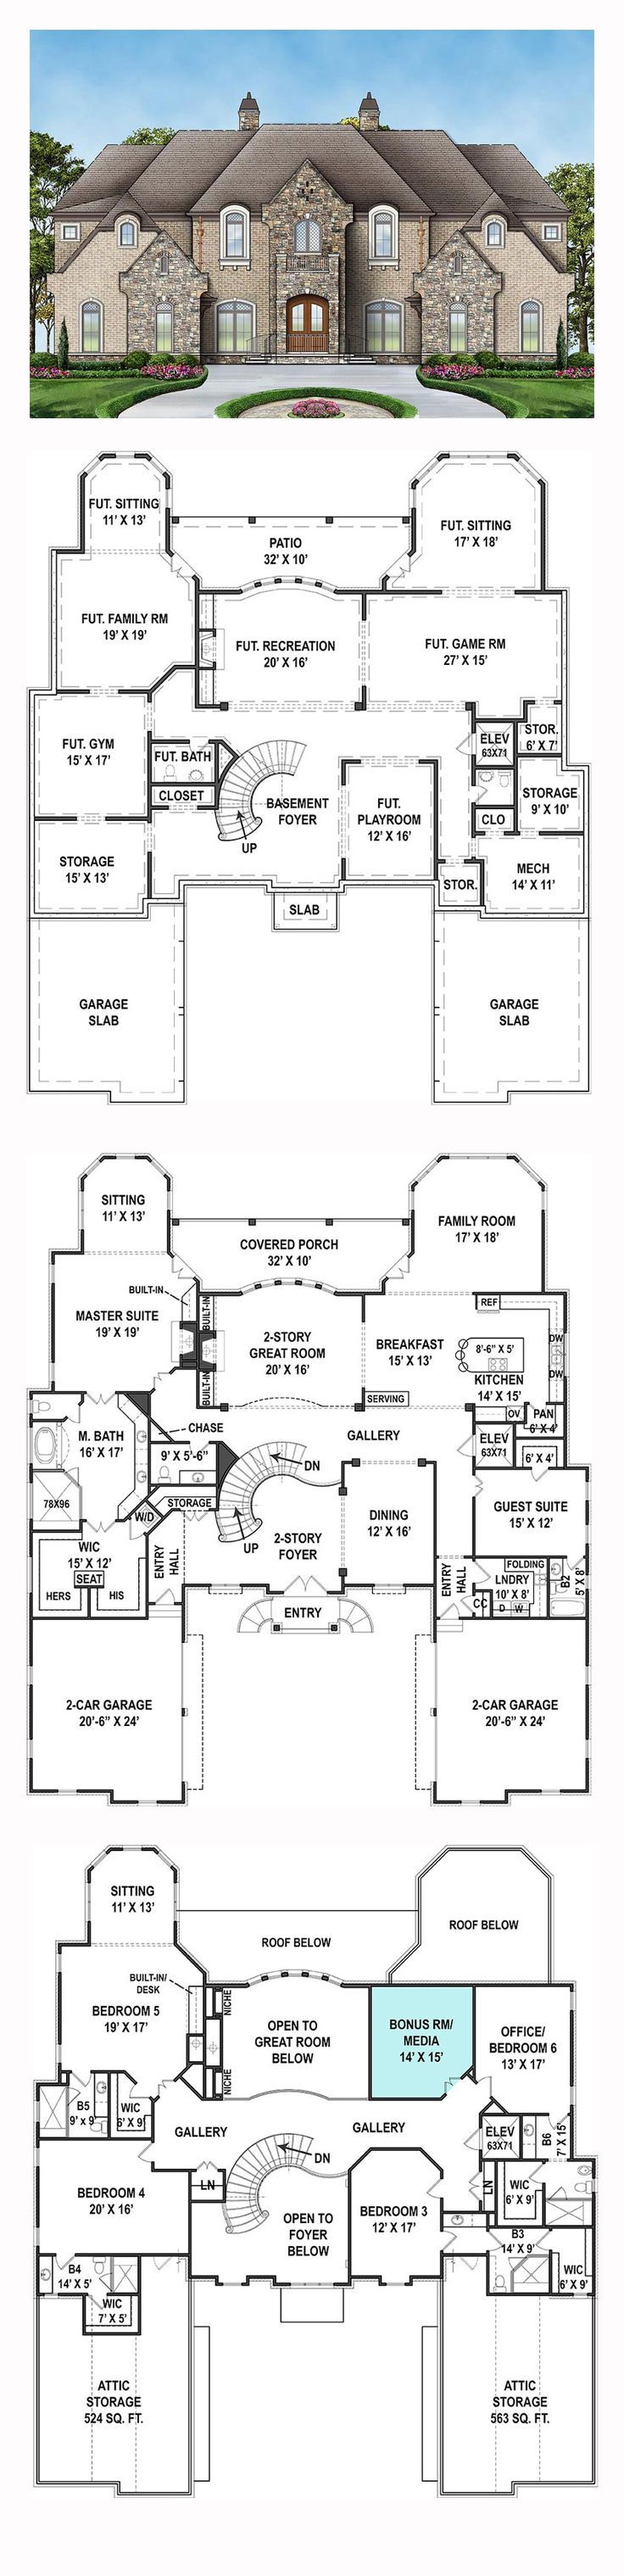 Best 25 new house plans ideas on pinterest 5 bedroom for House plans with 6 bedrooms